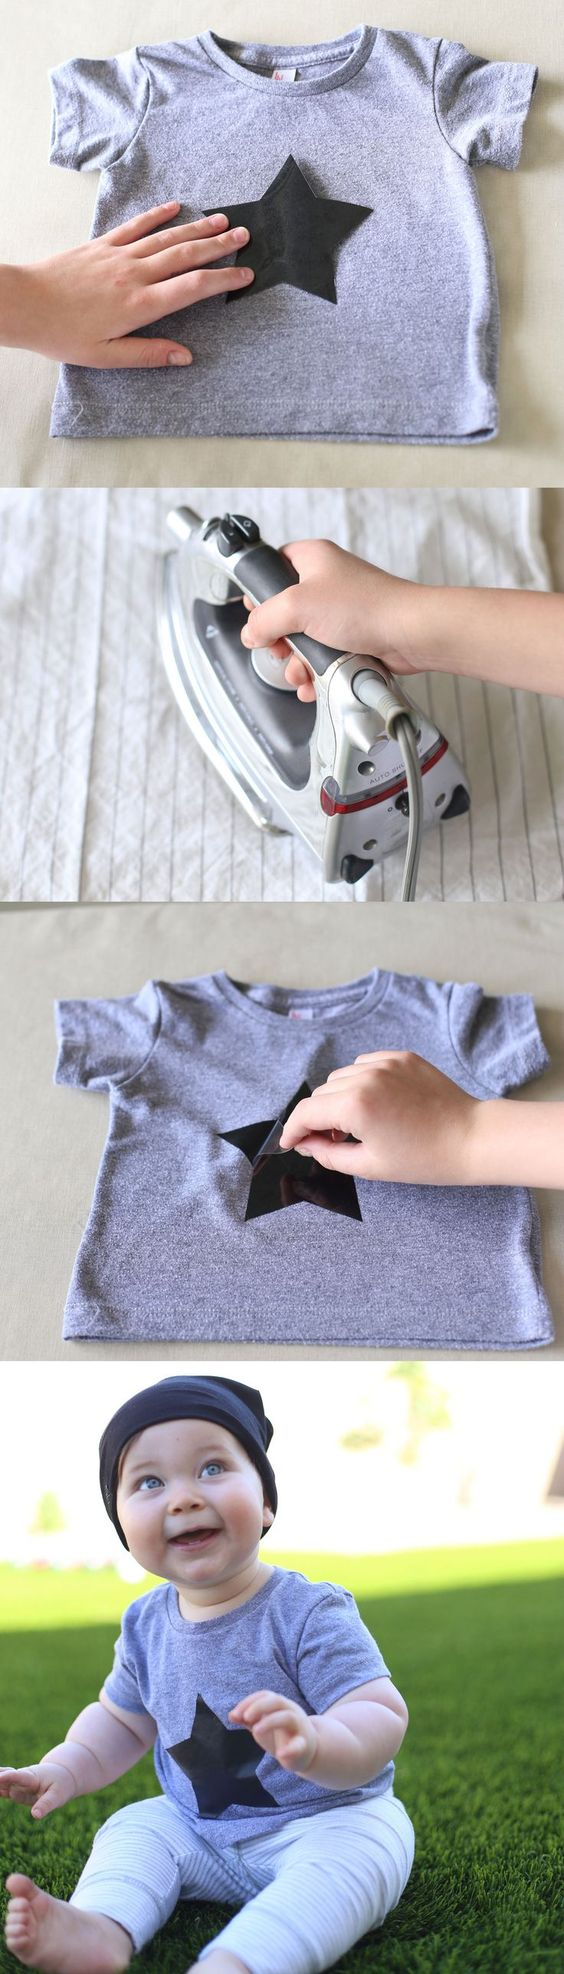 DIY baby shirt + cute baby boy style - DIY this graphic t shirt for your kiddo in five minutes! Easy peasy! Cute for boys and girls. It's a great baby clothes DIY and makes a great homemade gift for Christmas.